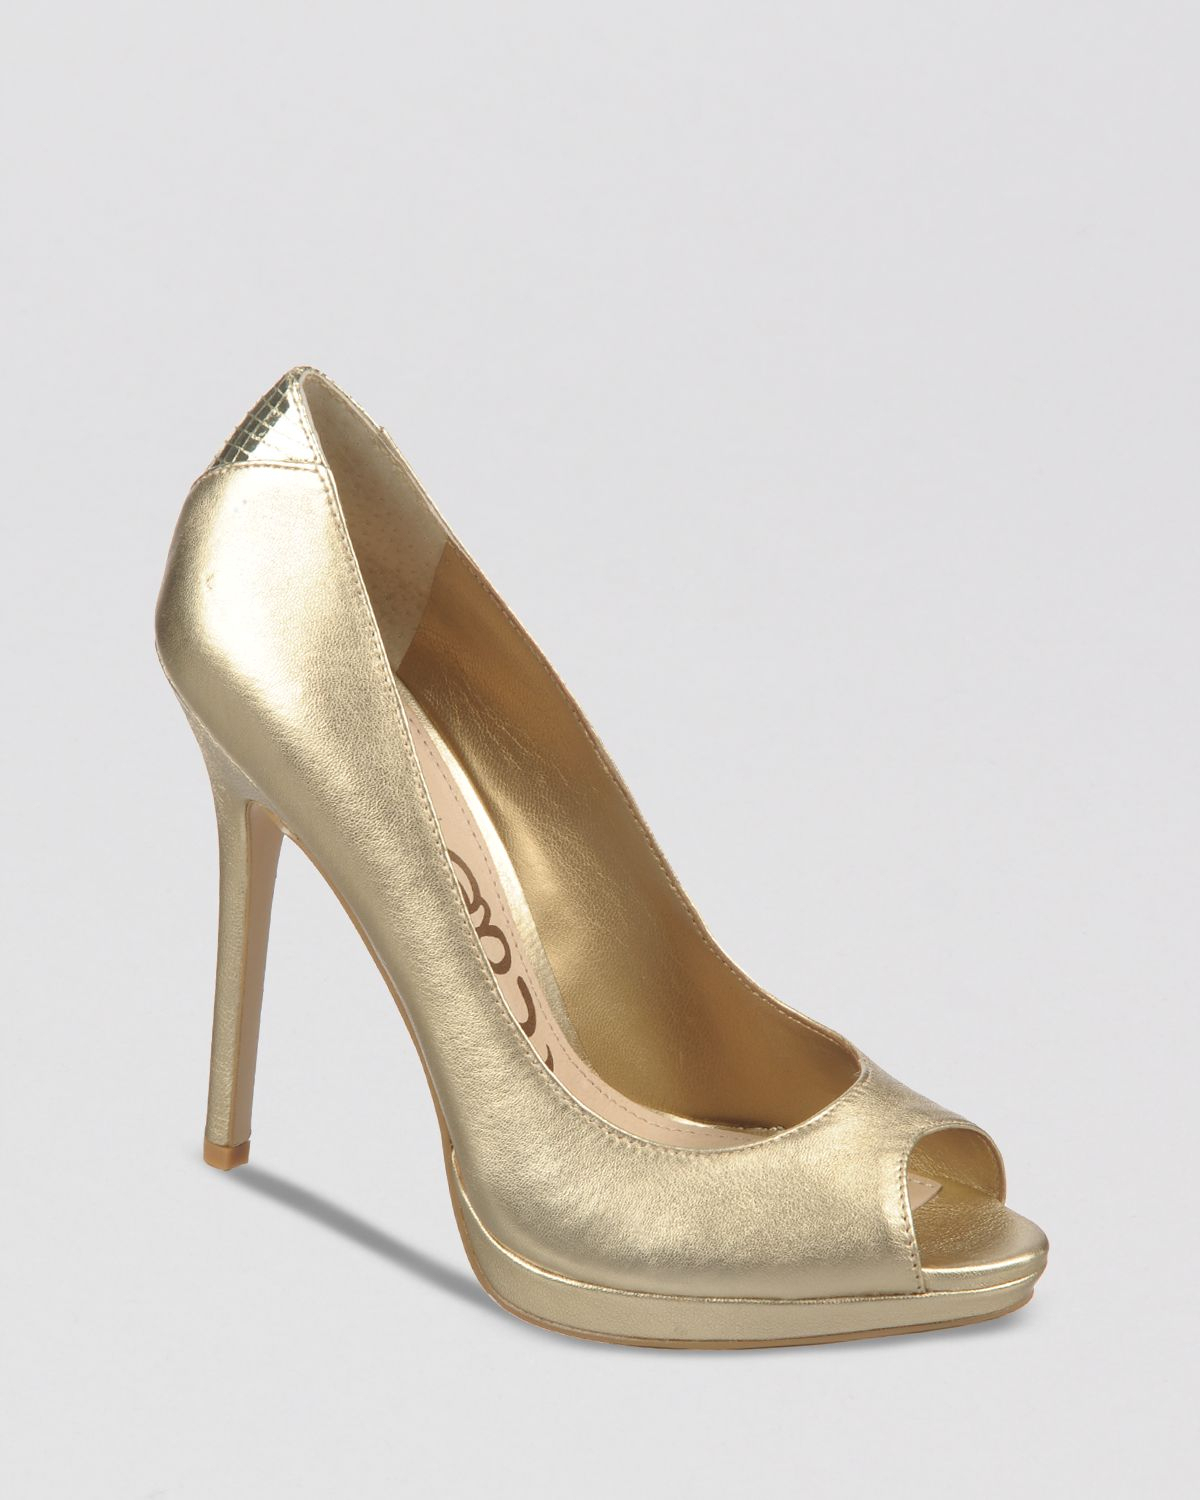 Light Gold Heels - Is Heel